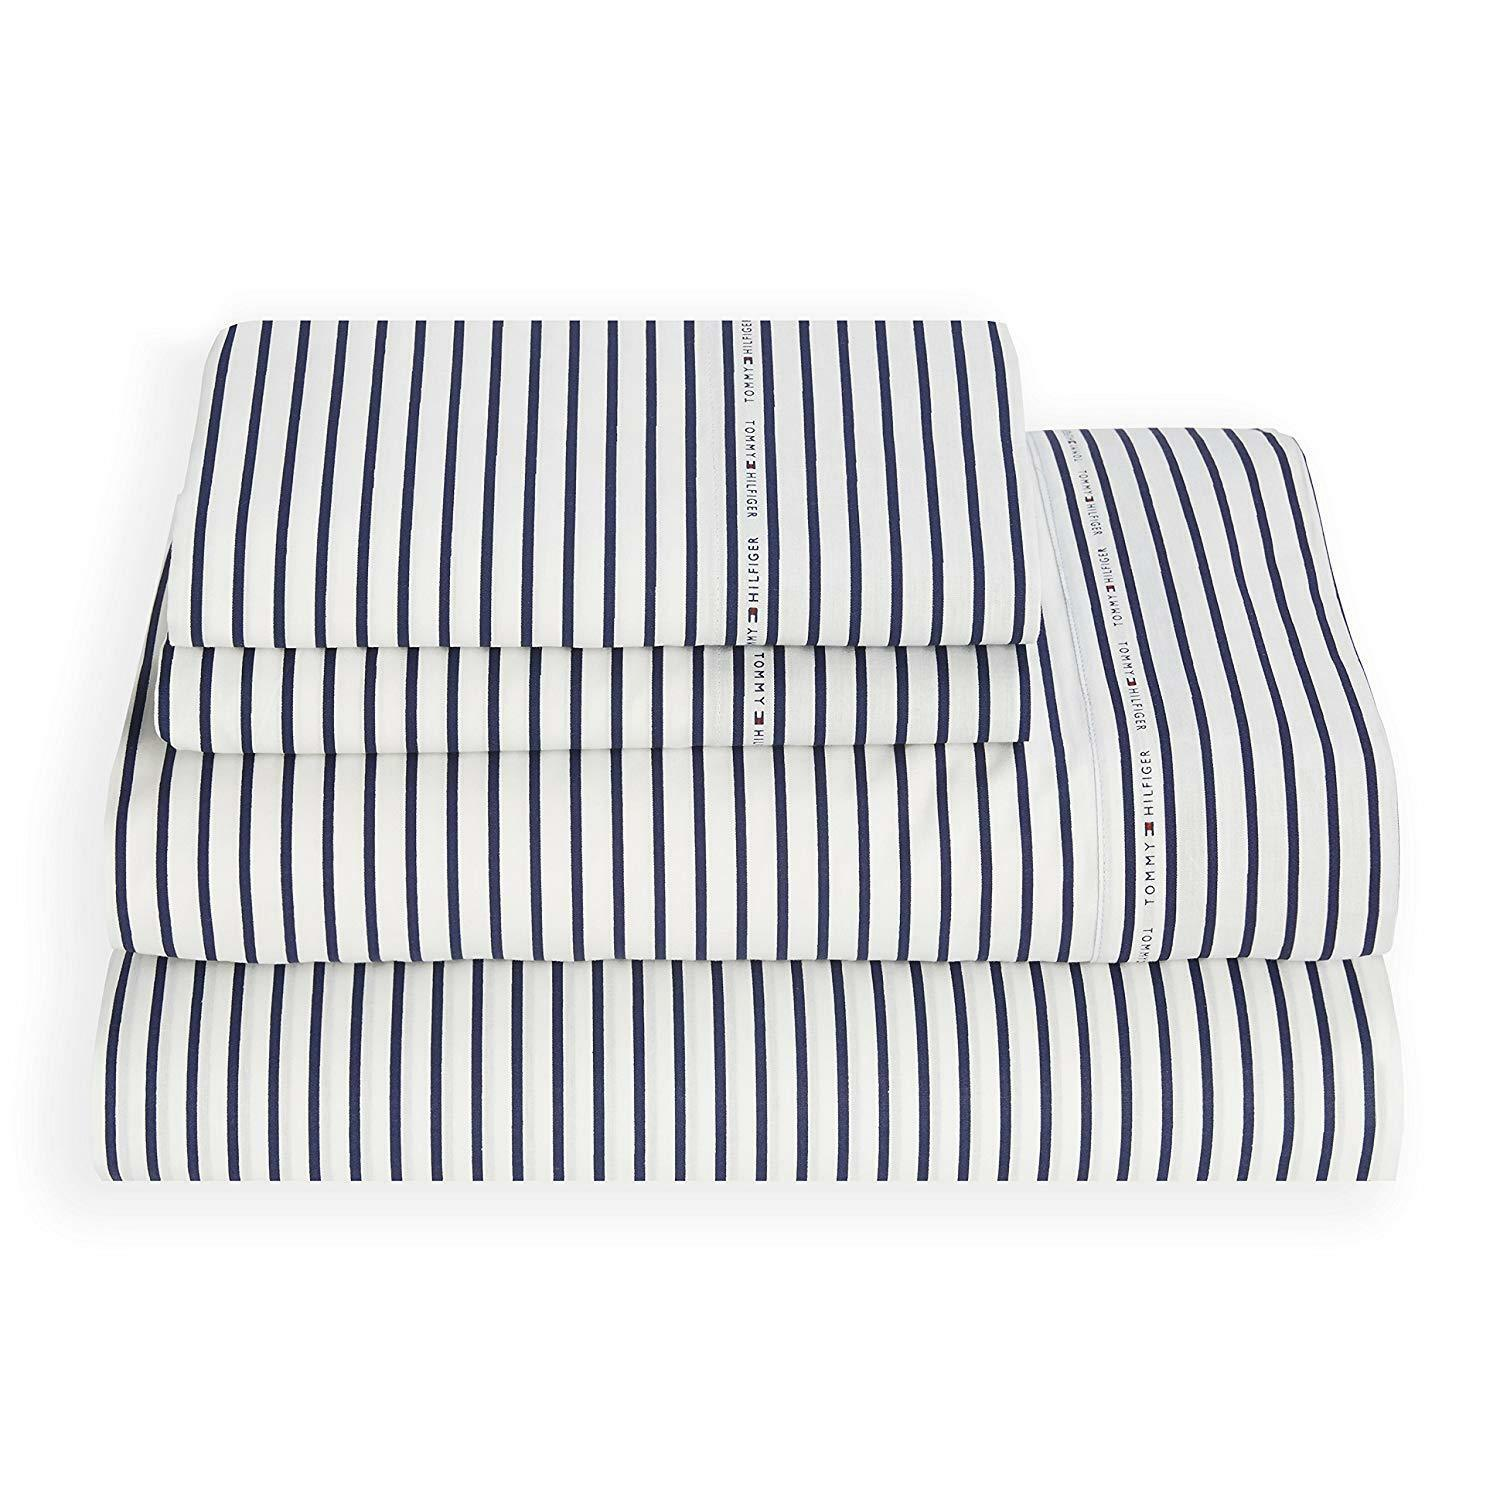 Tommy Hilfiger 4 Pc Queen Queen Queen Signature Stripe Sheet Set Navy & bianca Easy Care 1dec7c